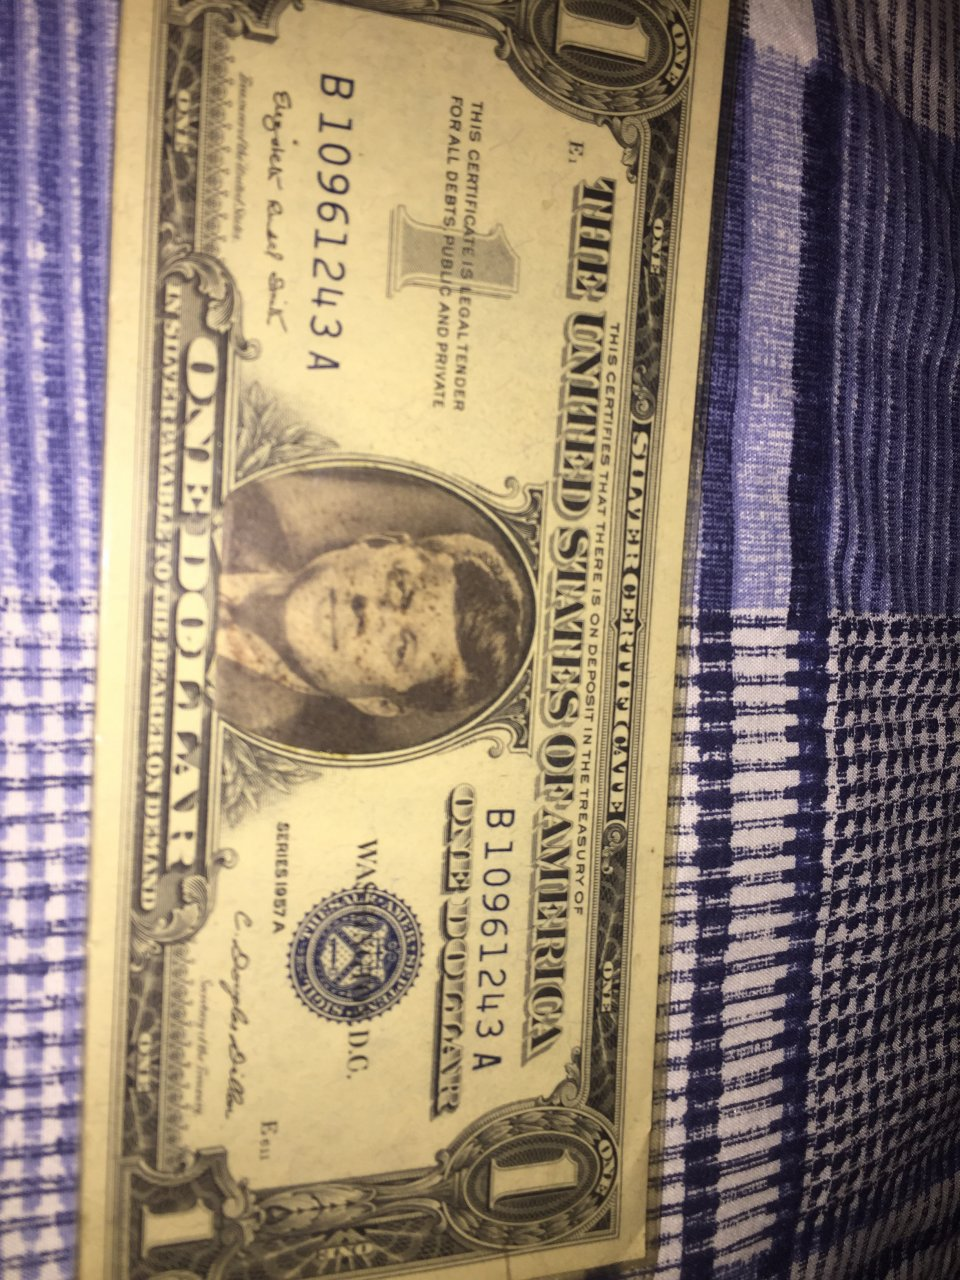 I Have A Series 1957a Jfk One Dollar Certificate Is It Worth